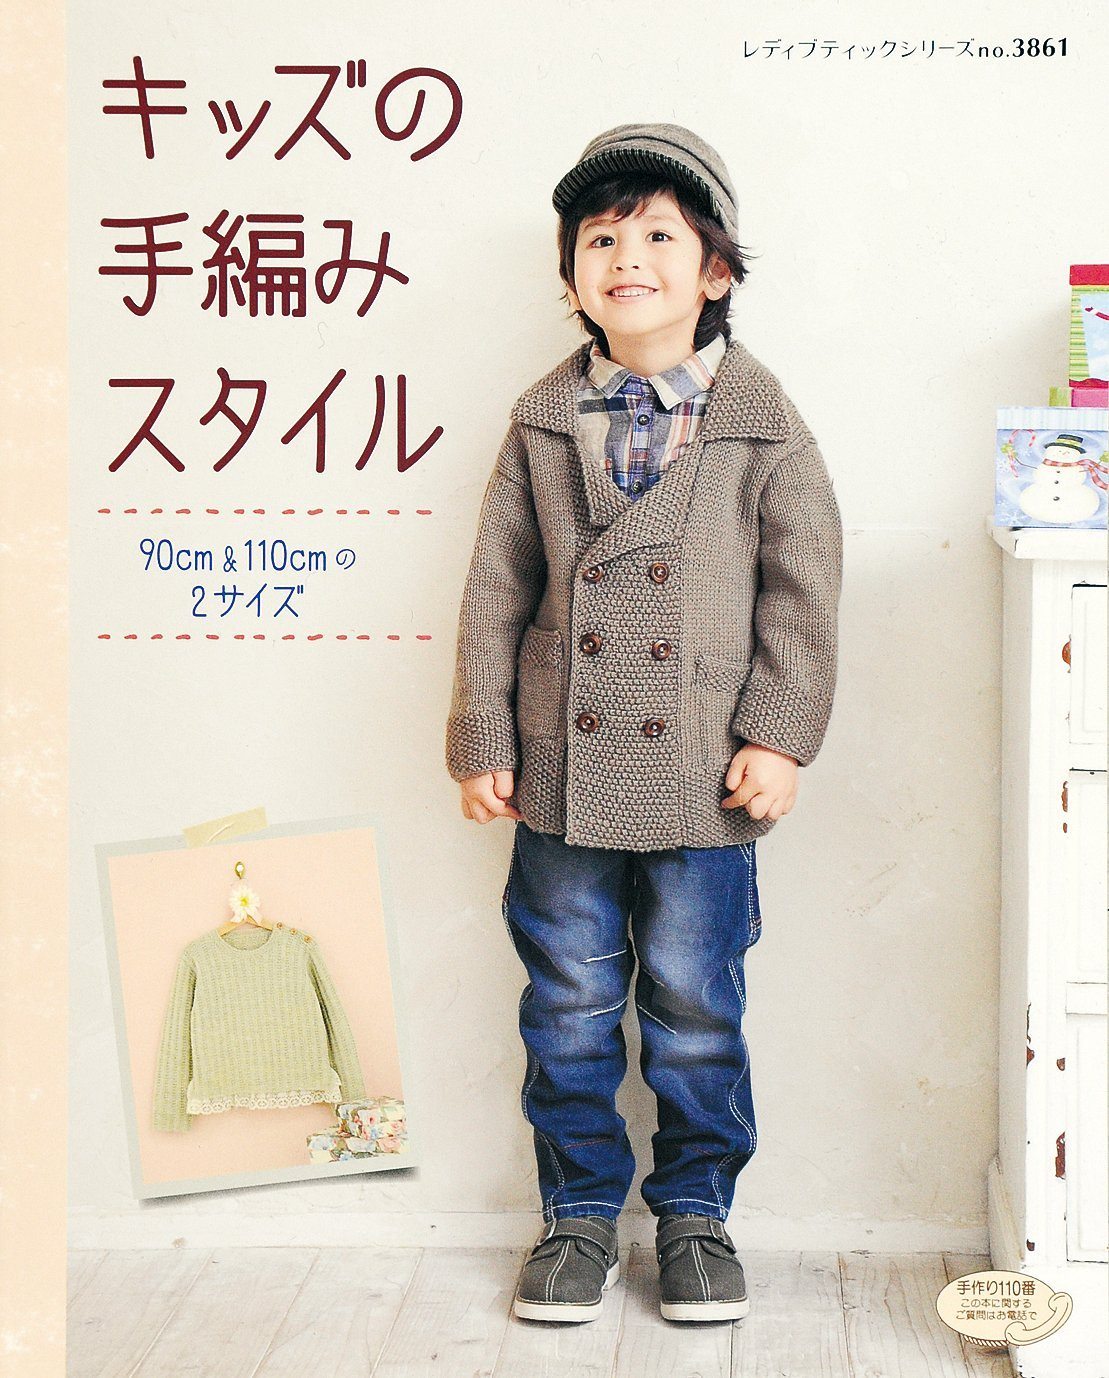 Hand-knitted fashionable style of Kids 2 size of 90cm ~ 110cm